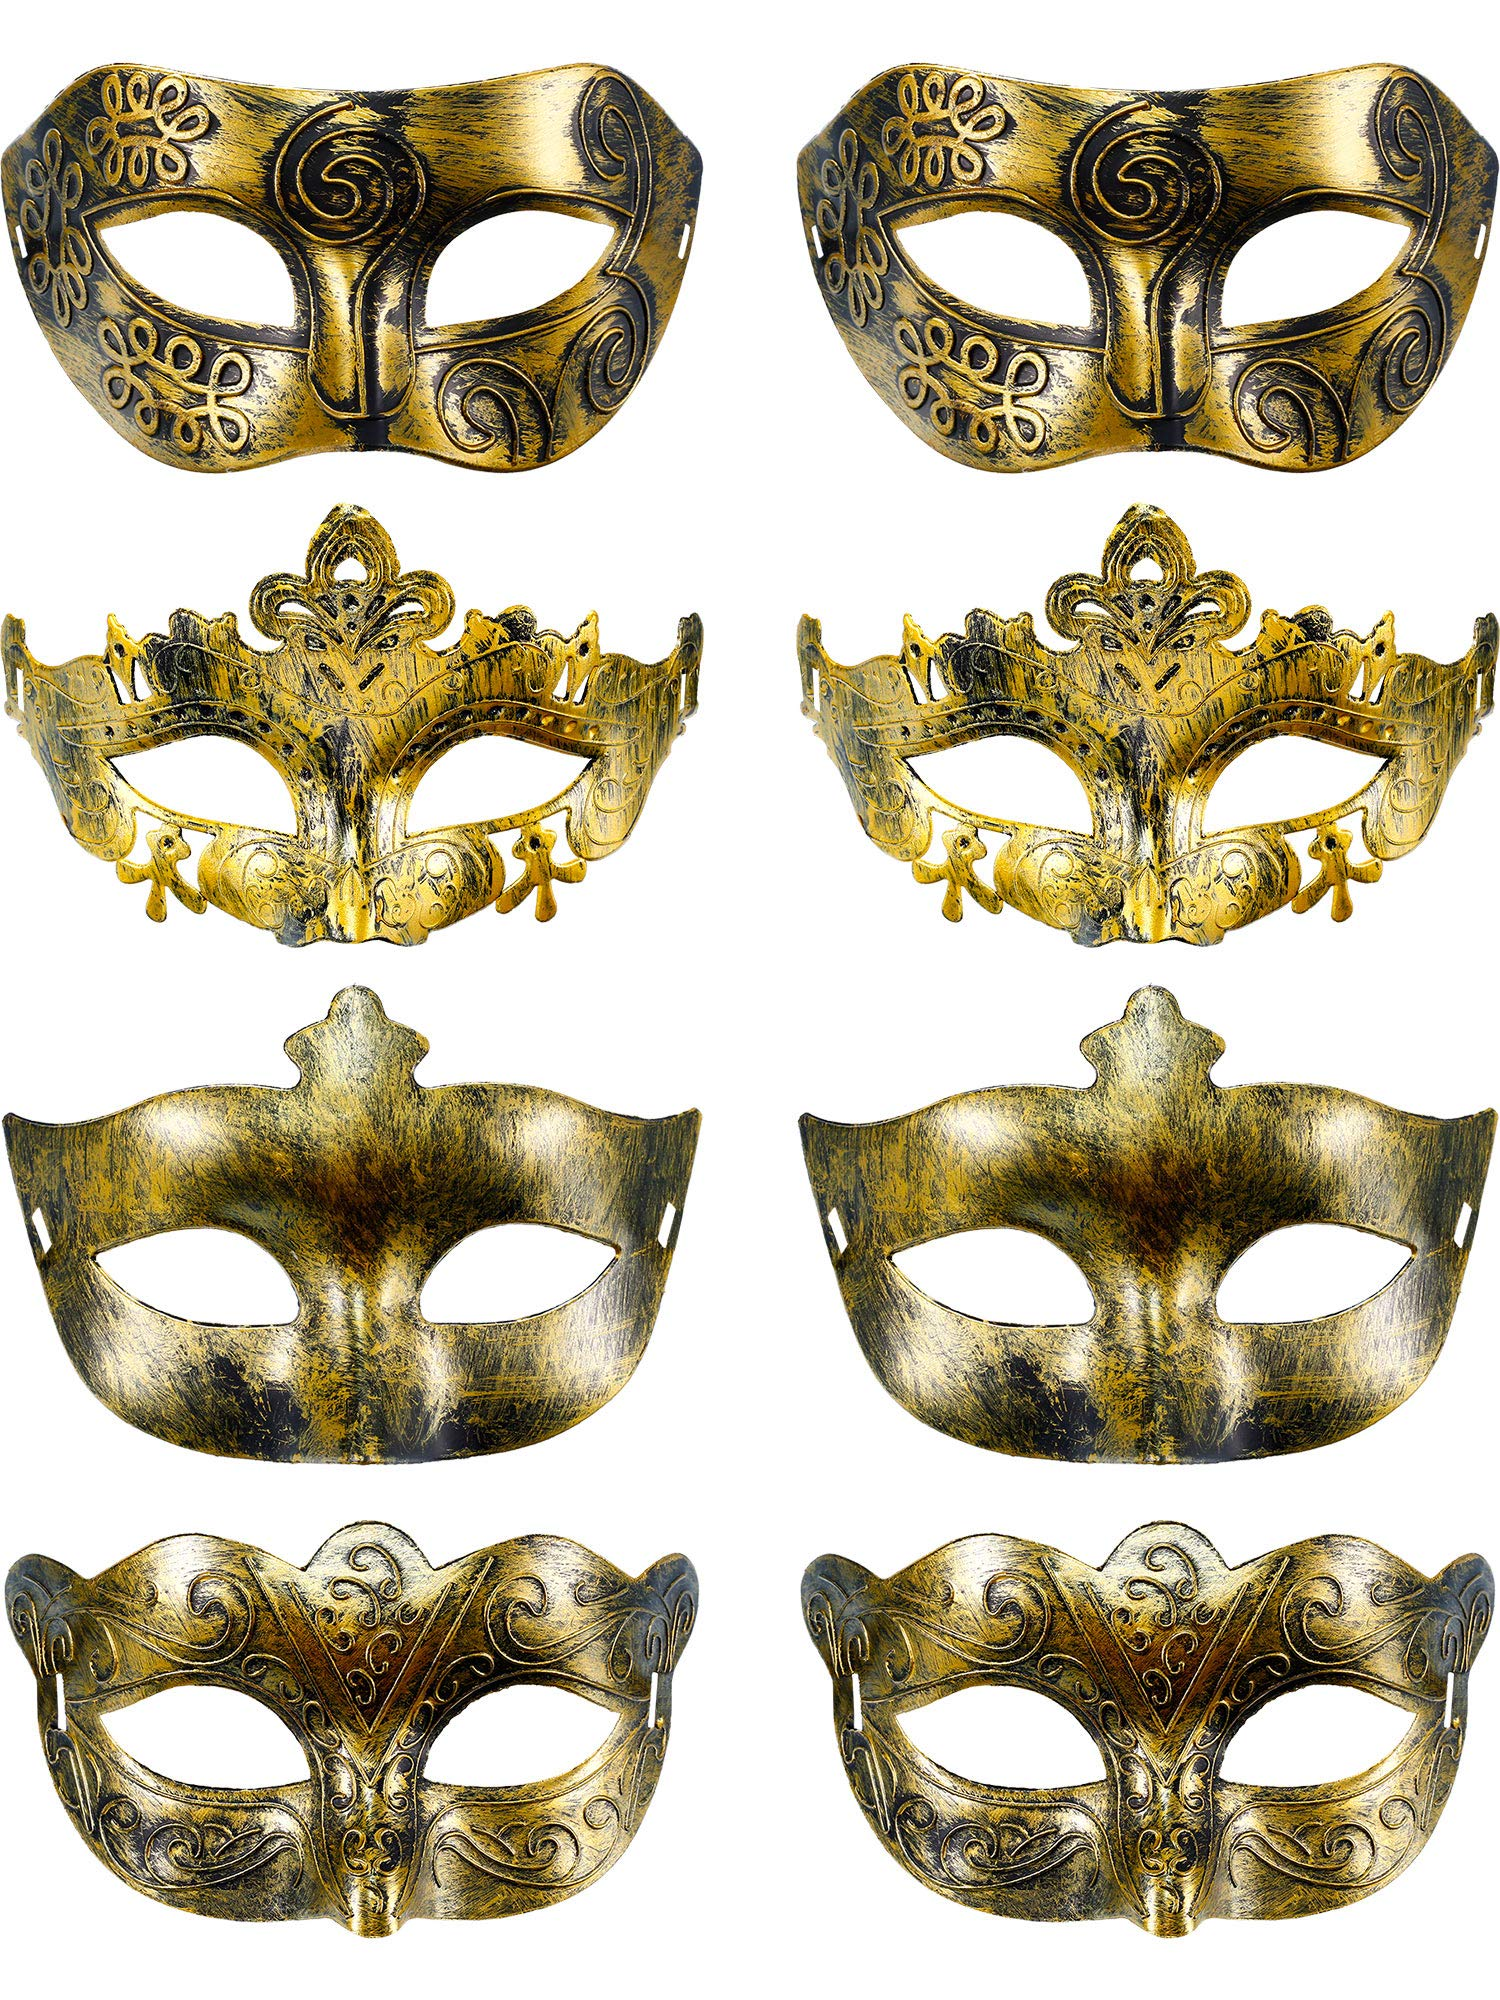 8 Pieces Vintage Antique Masks Hallowmas Masquerade Carnival Mask